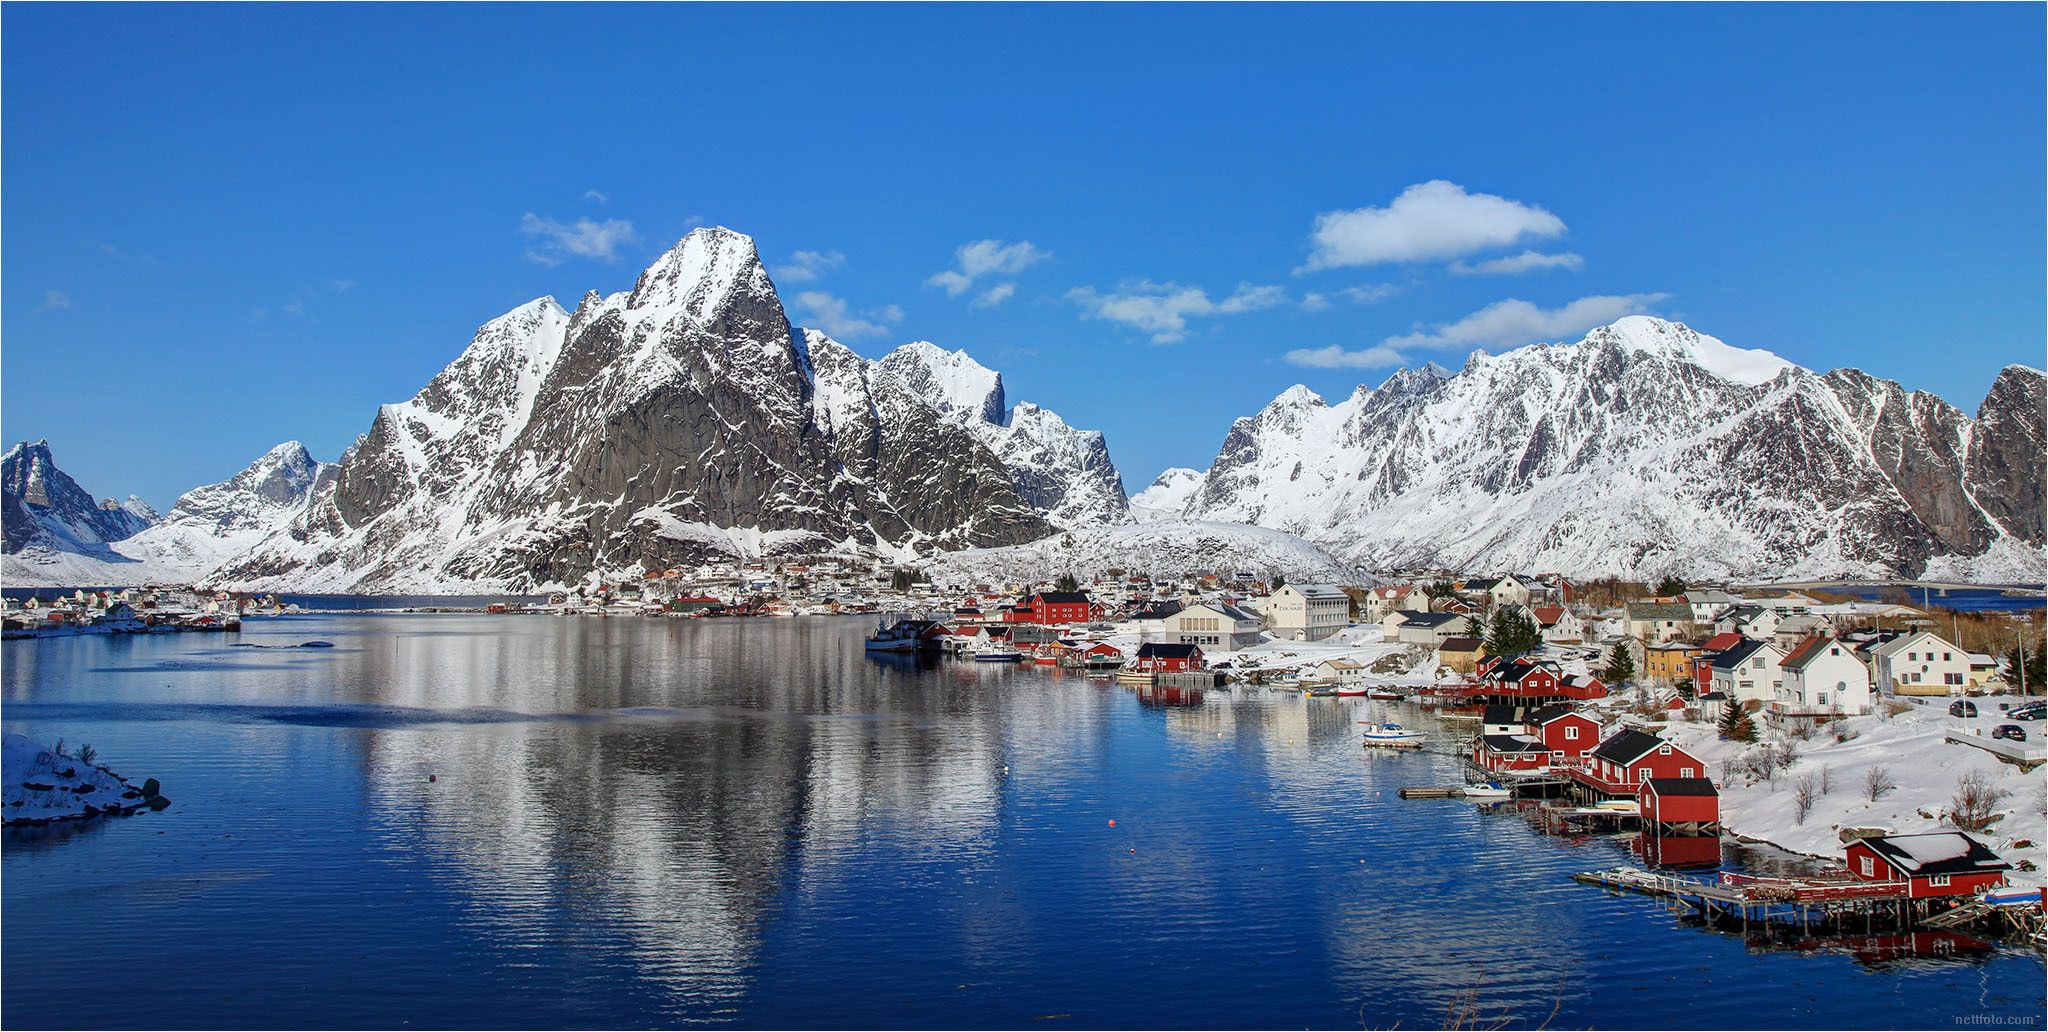 https://flic.kr/p/CYjP55 | Lofoten panorama (Explored) | A calm and sunny winter day in Lofoten. This panorama is from Reine, one of the very nice places in Lofoten, Norway